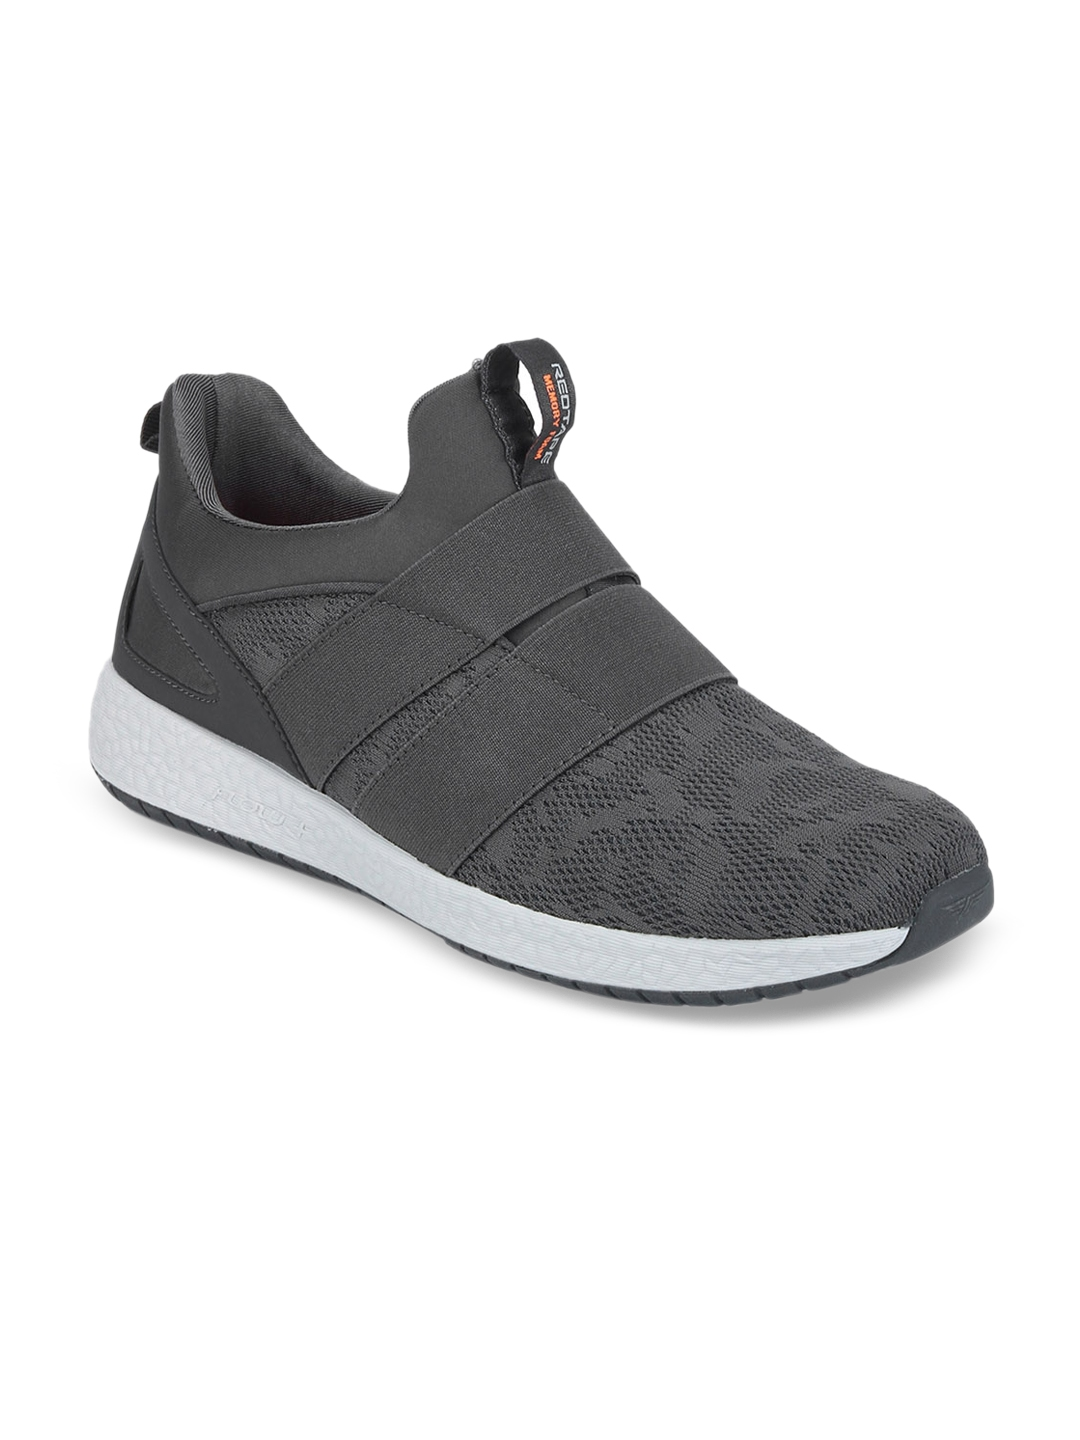 6aef535e9 Buy Red Tape Men Grey Athleisure Sports Running Shoes - Sports Shoes ...